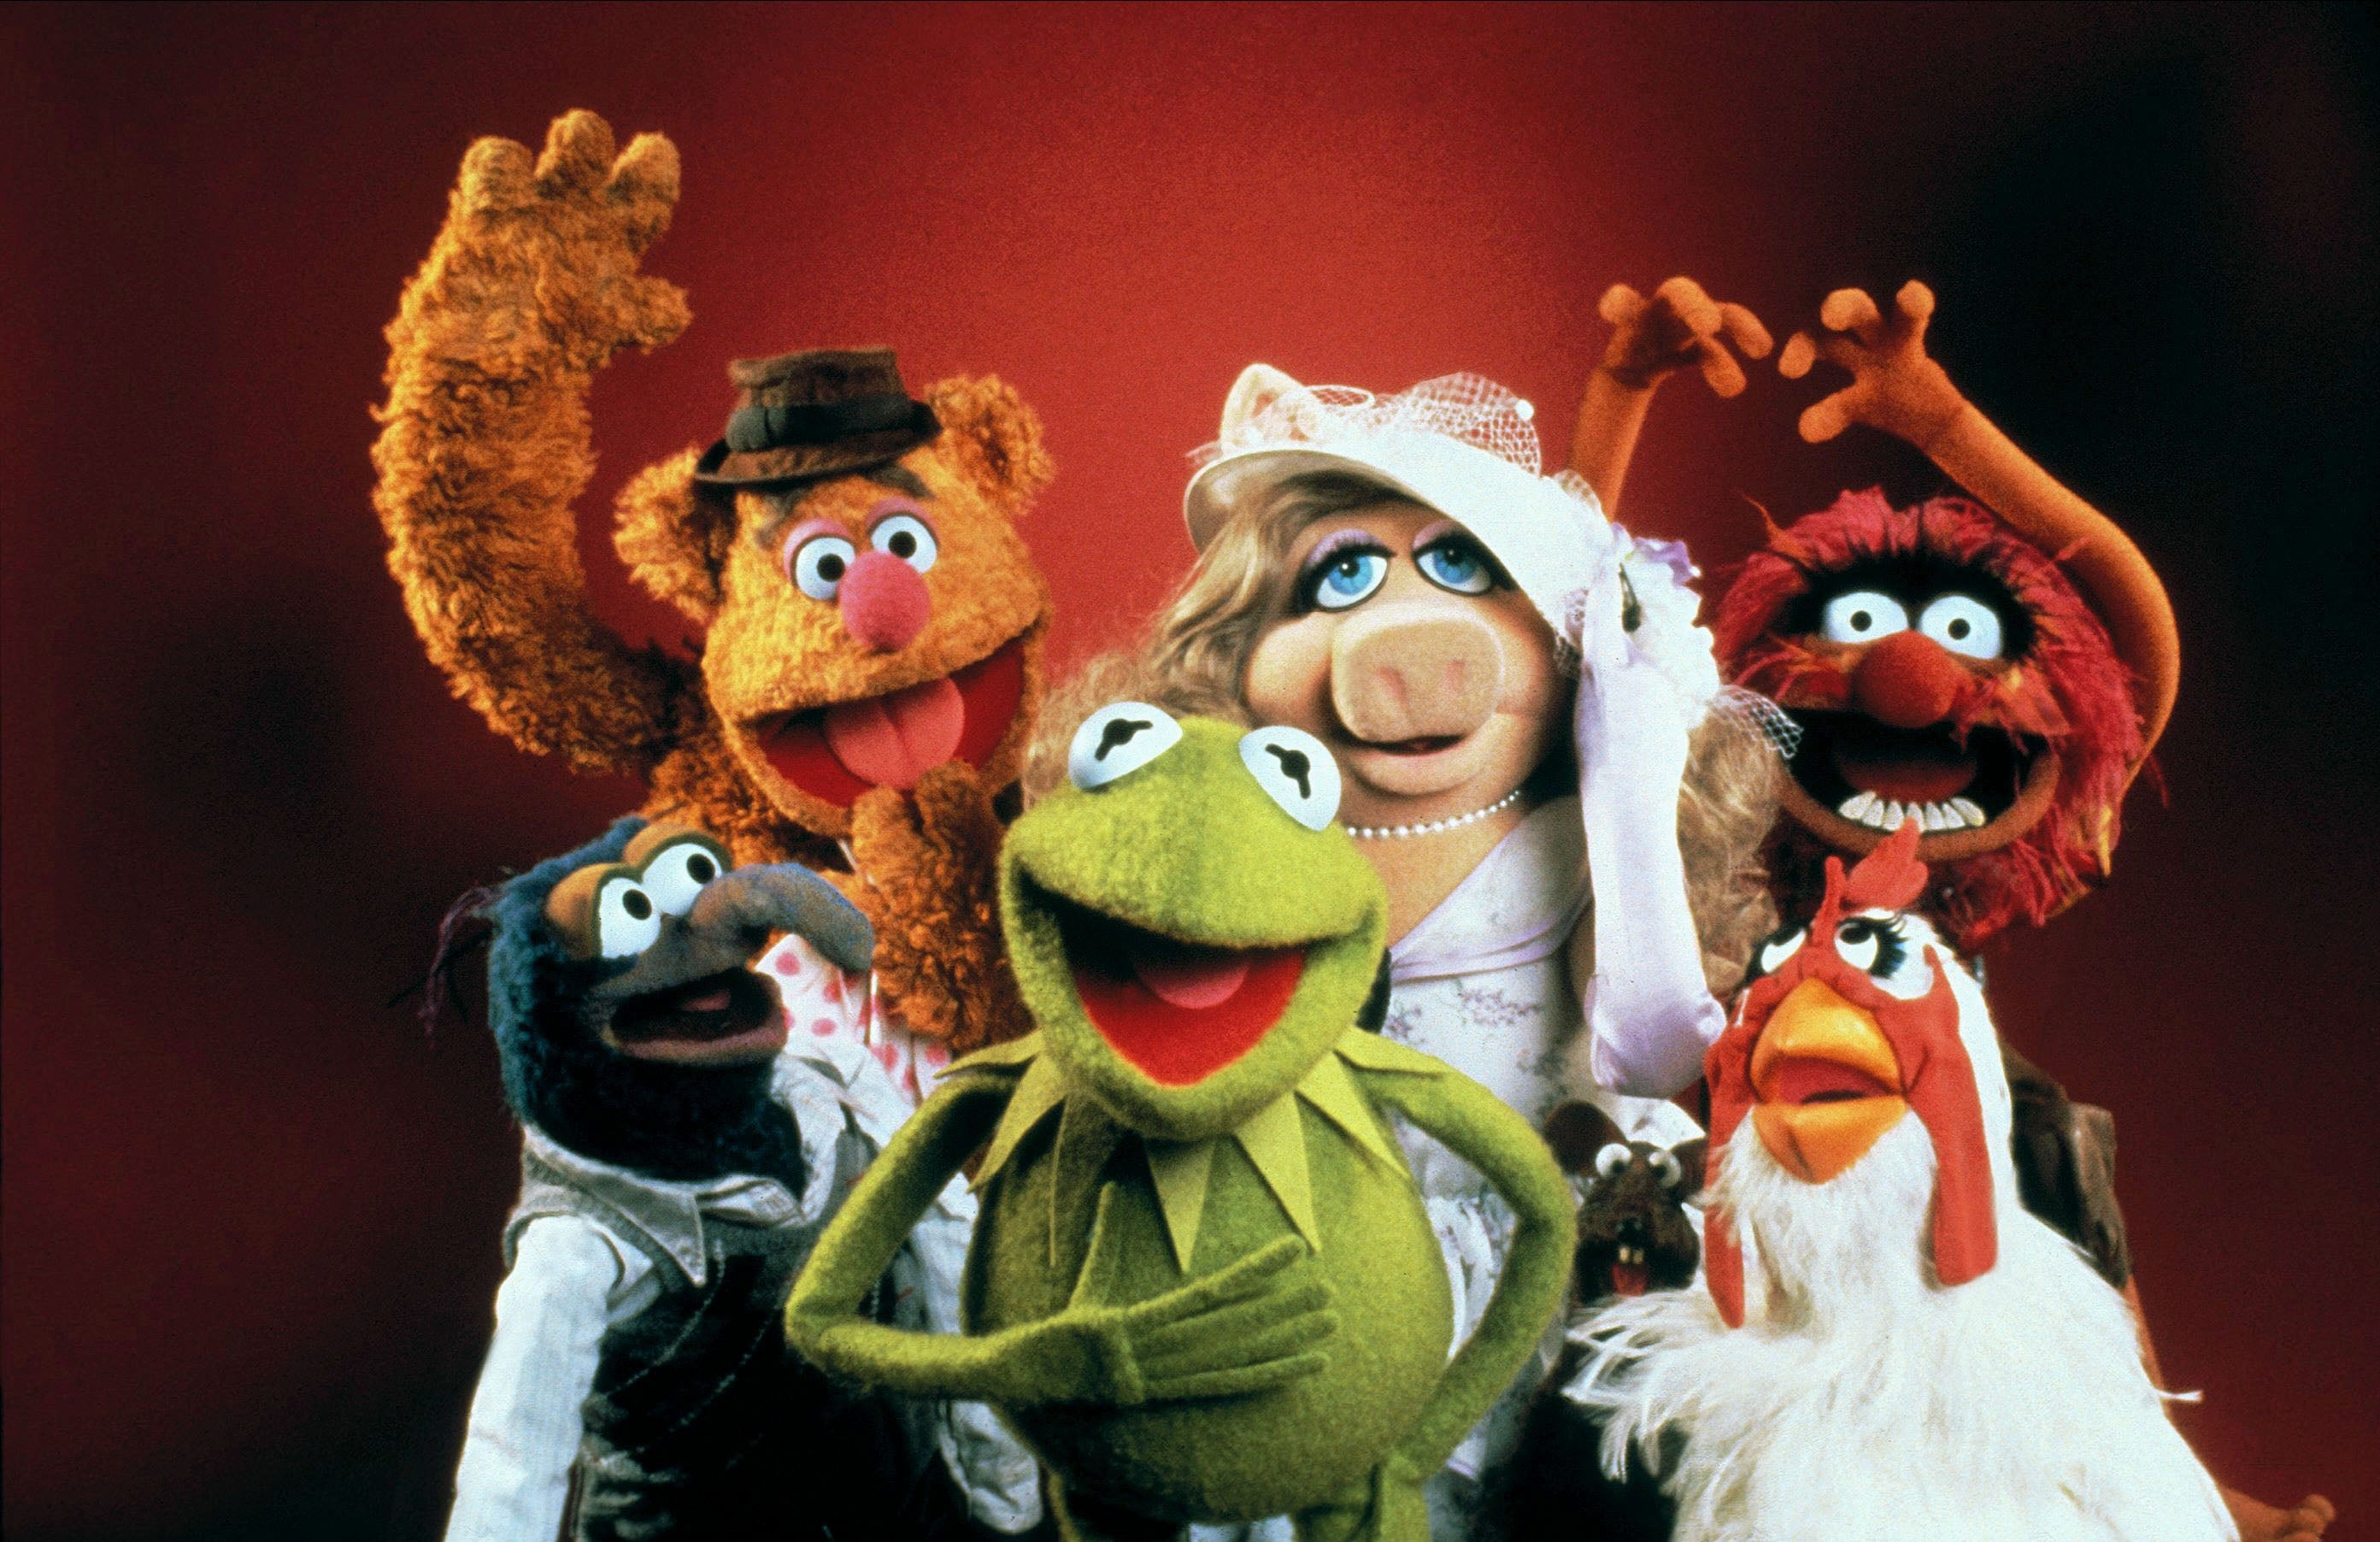 A collection of the Muppets pose happily against a red background.